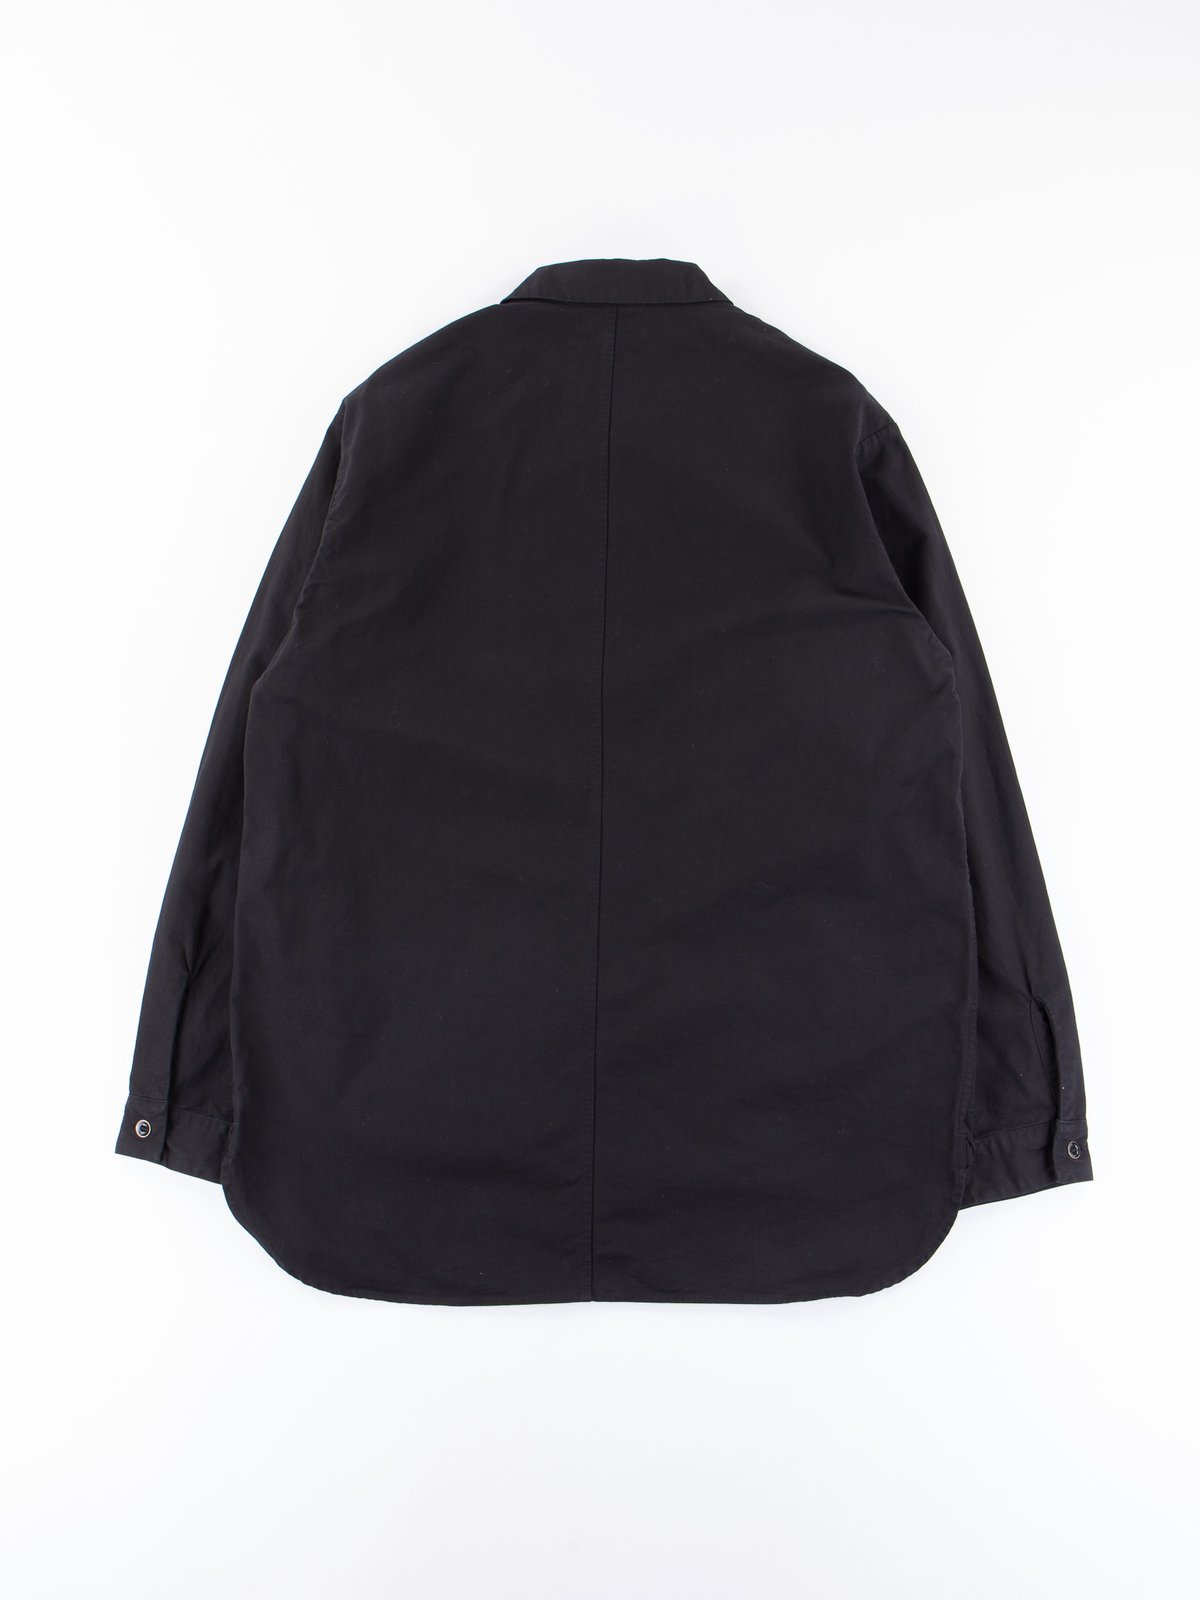 Black Gardener Shirt Jacket - Image 4